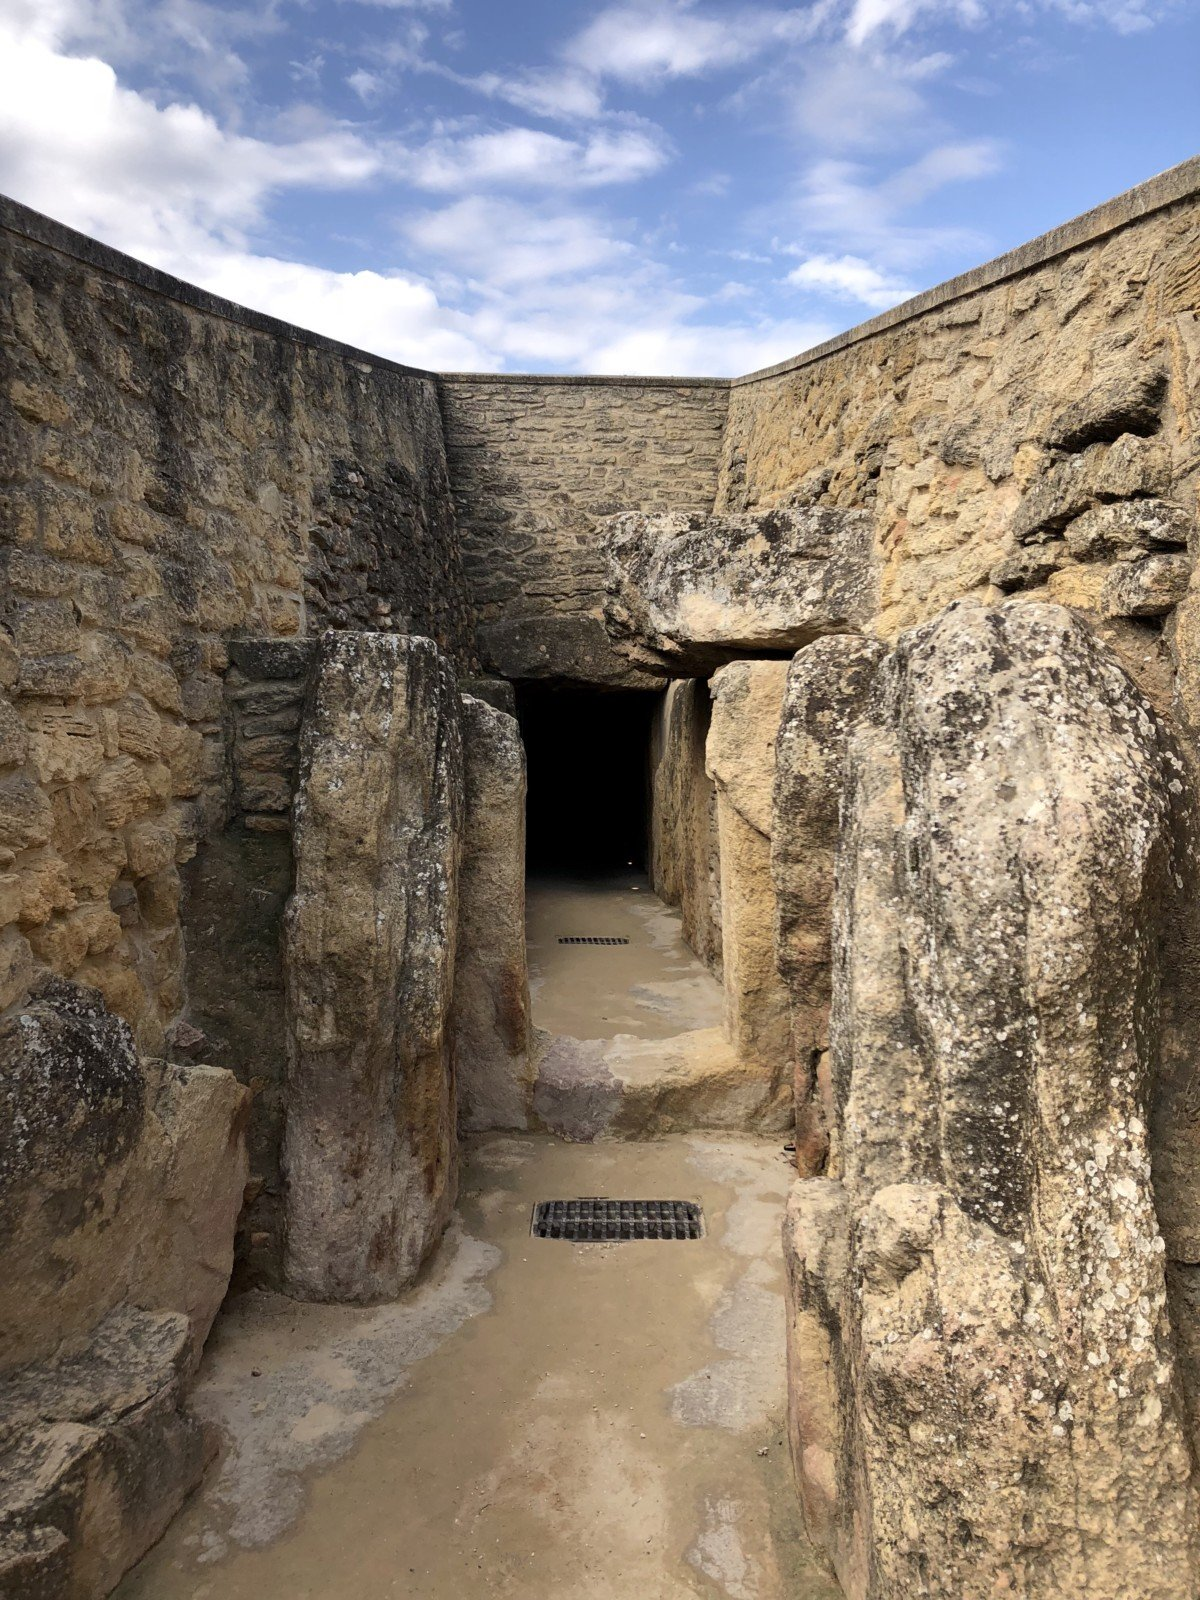 The entrance to The Dolmen of Viera's long corridor tomb.